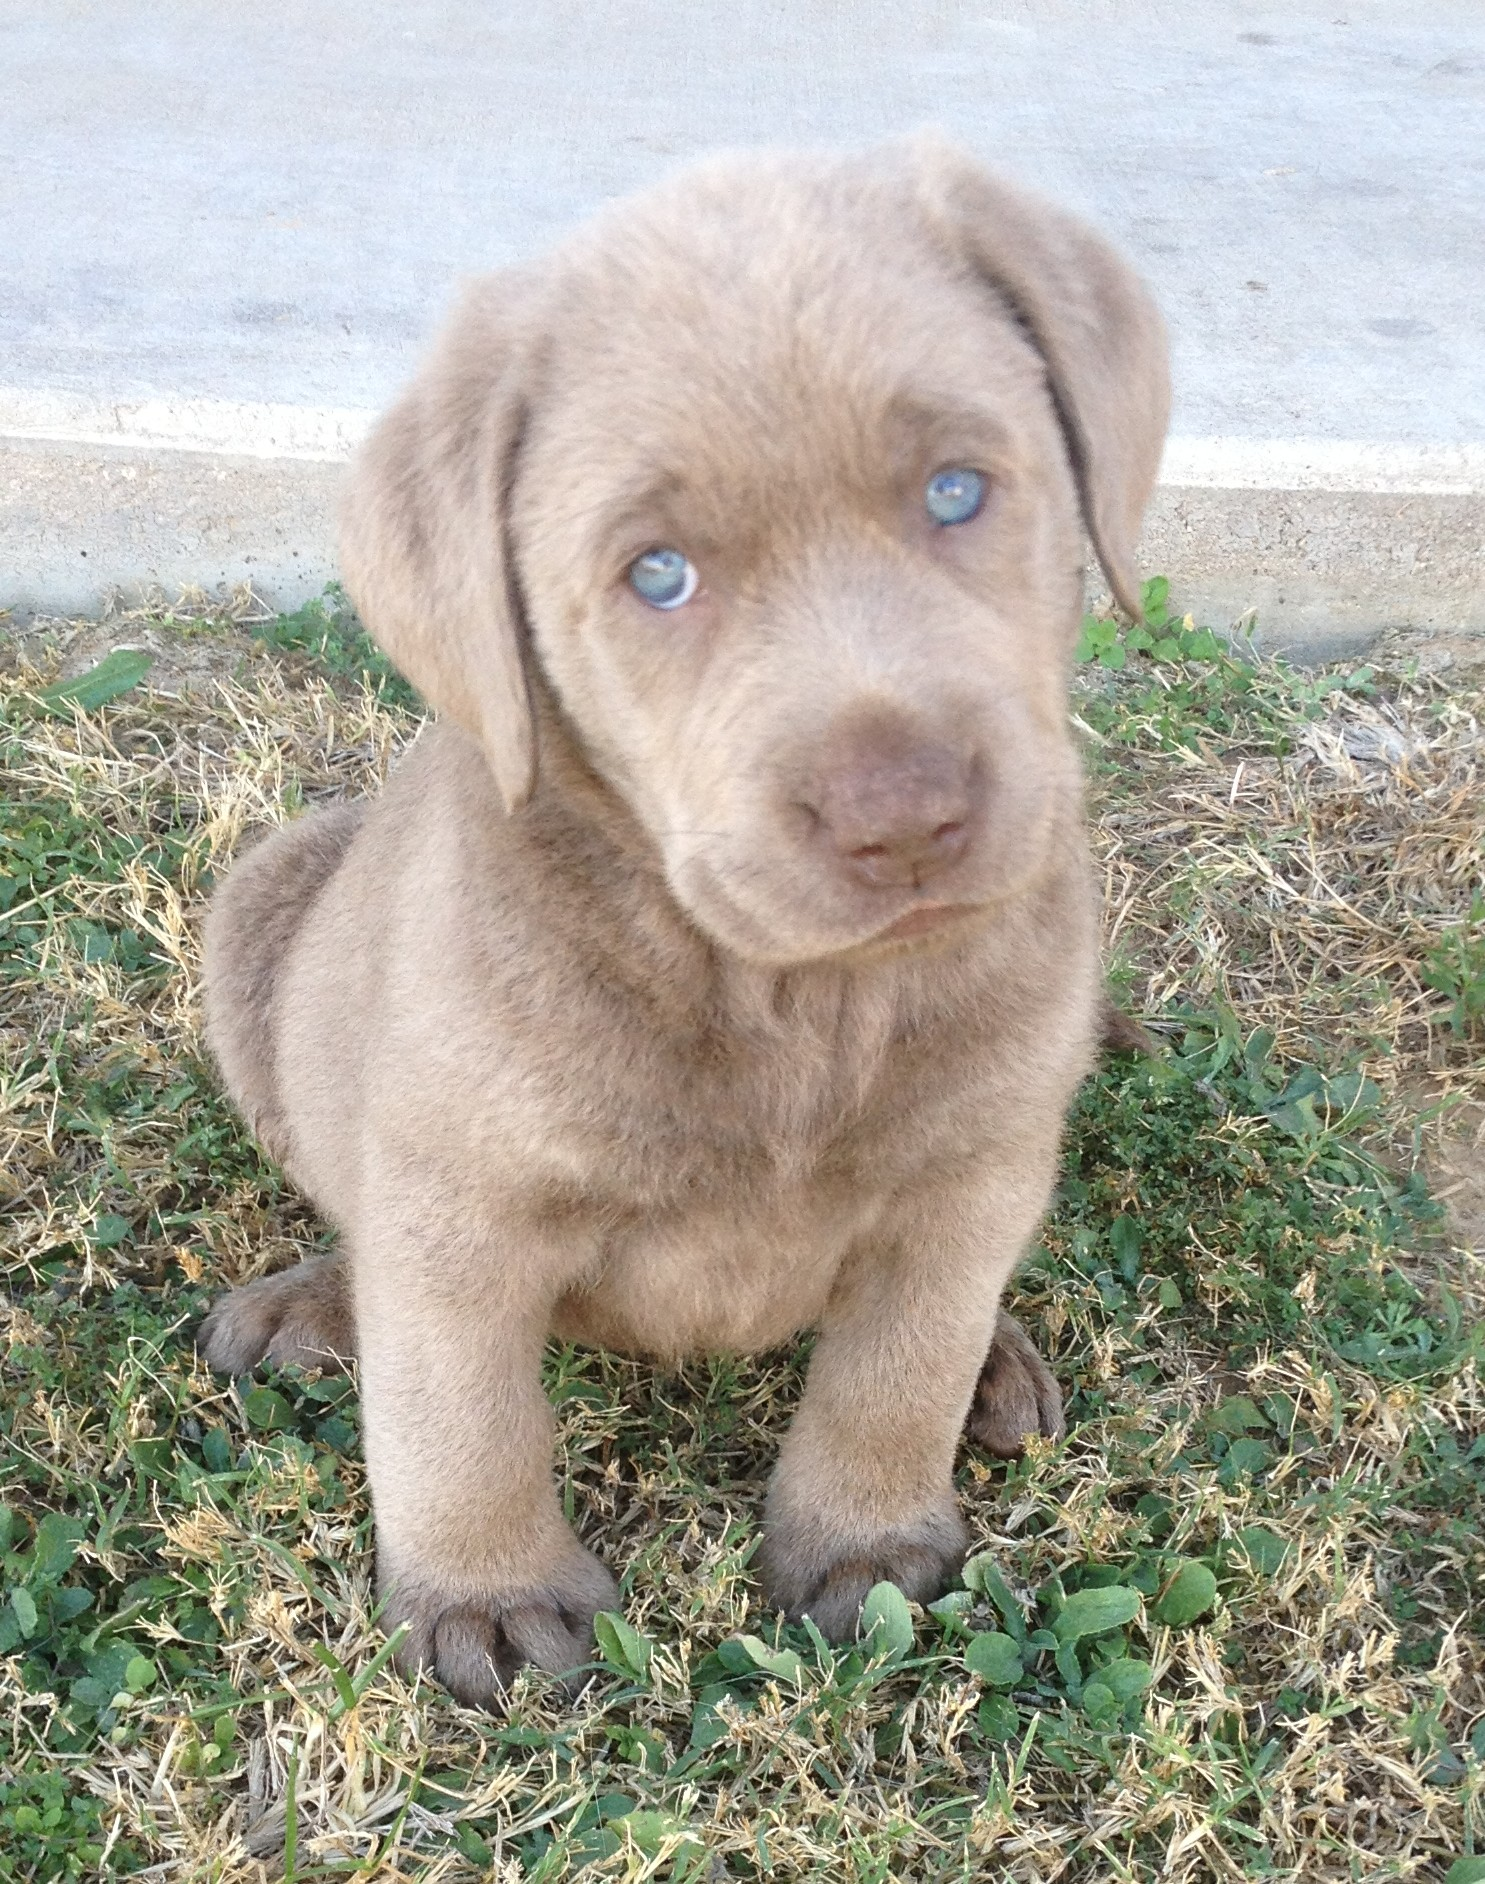 Lab Dog Puppy Price 2017 Baby Small Labrador Puppies Alabama For